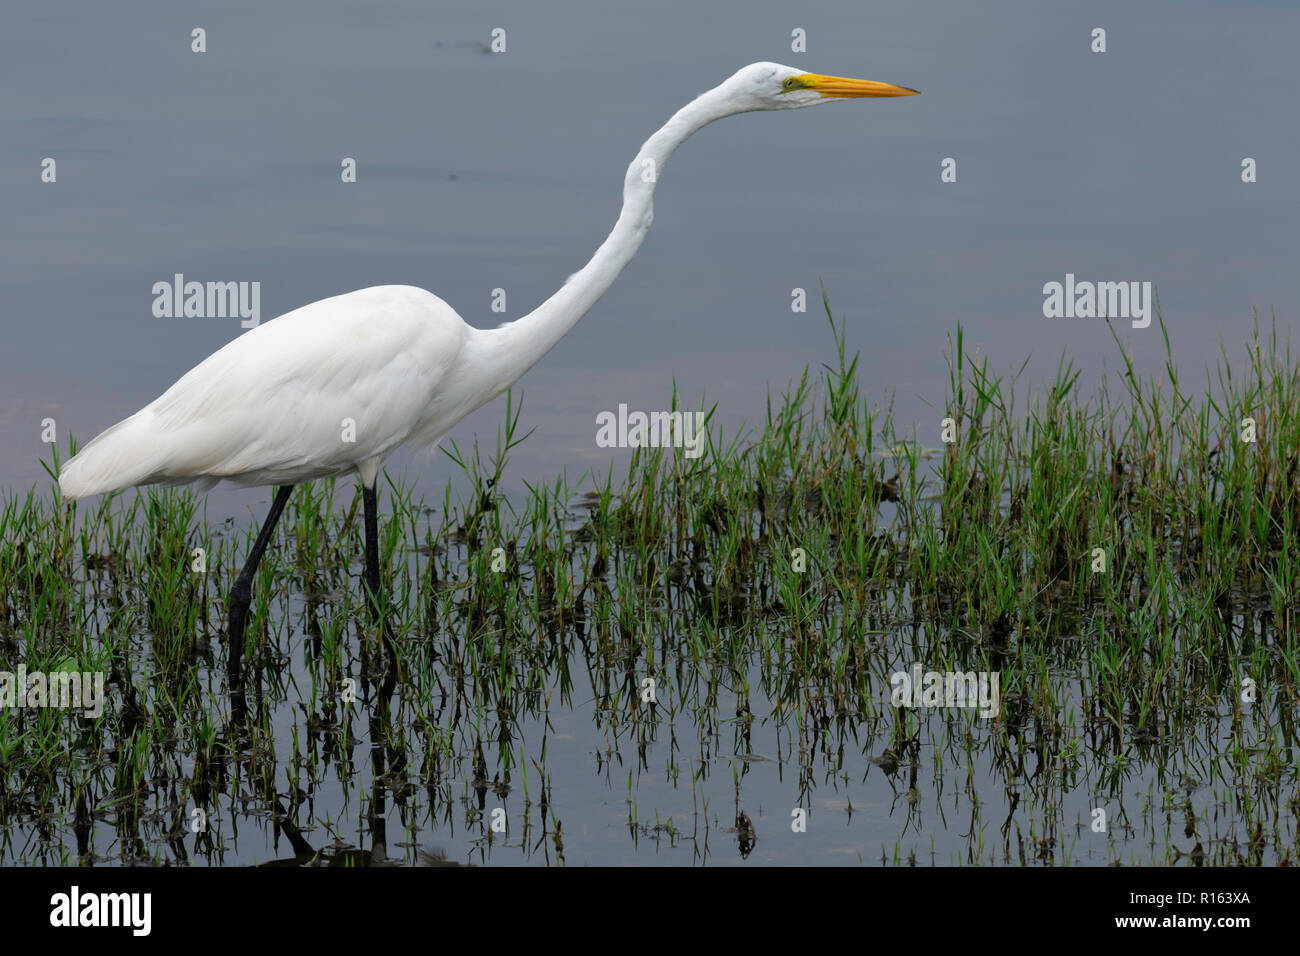 Egret kneed deep in water - Stock Image